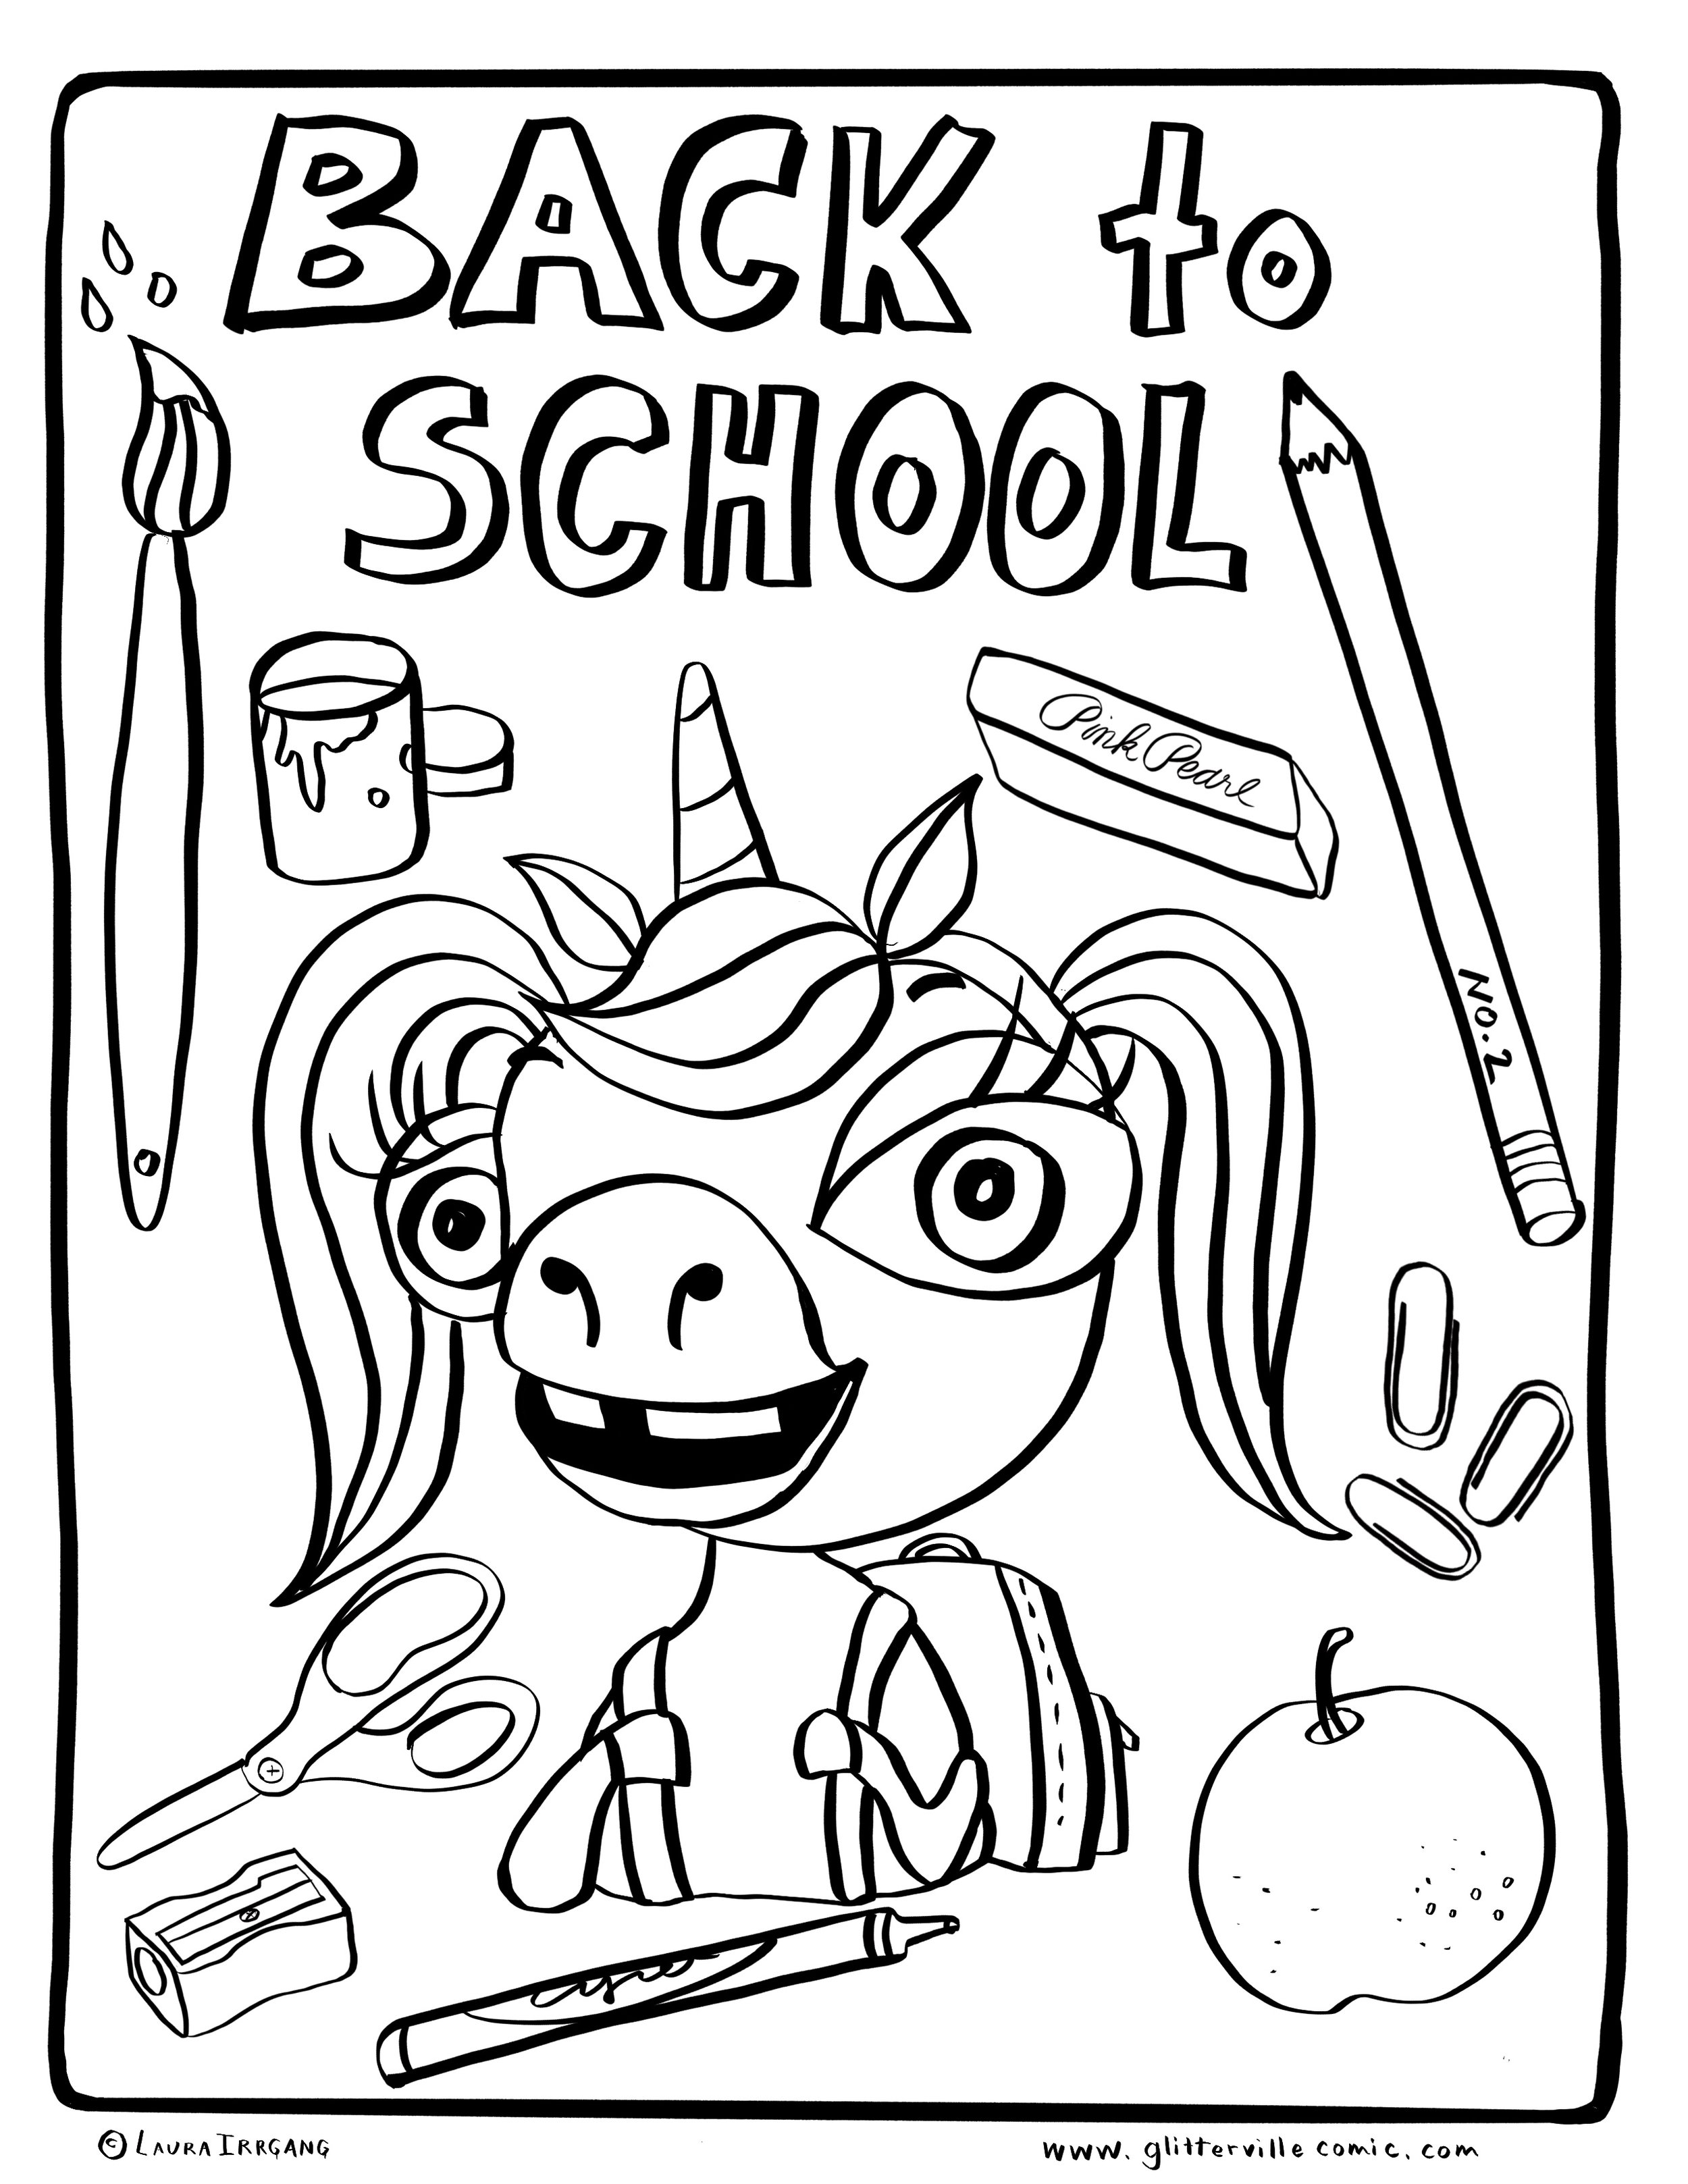 Back To School Eunice coloring sheet black white.jpg